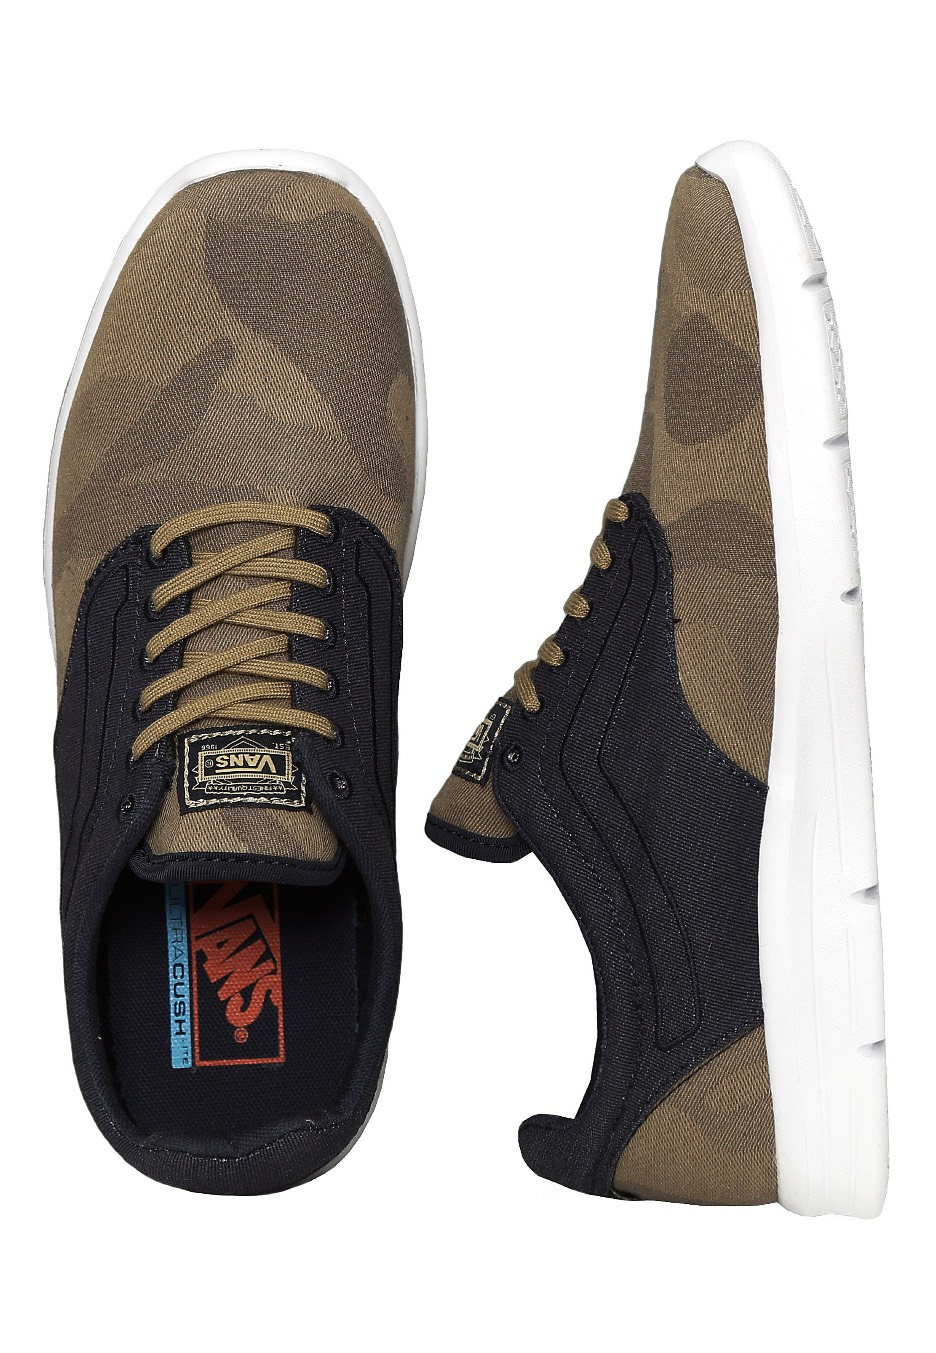 d0ef8077a694be Vans - Iso 1.5 Camo Textile Olive Night White - Shoes - Impericon.com UK